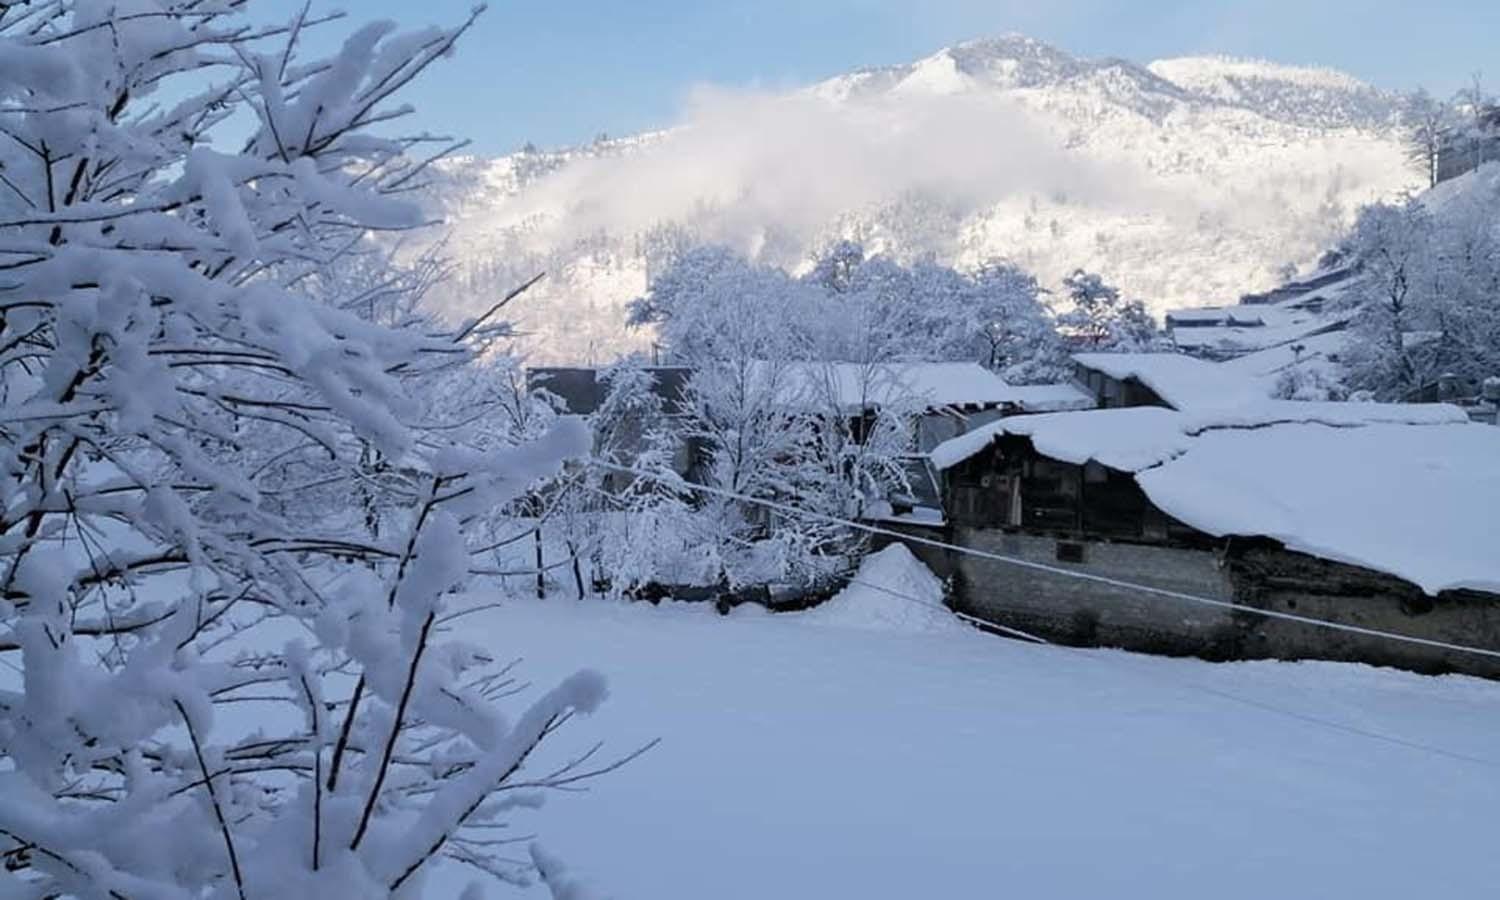 Days of snow accumulated over roofs and treetops in Swat— Murad Ali Khan